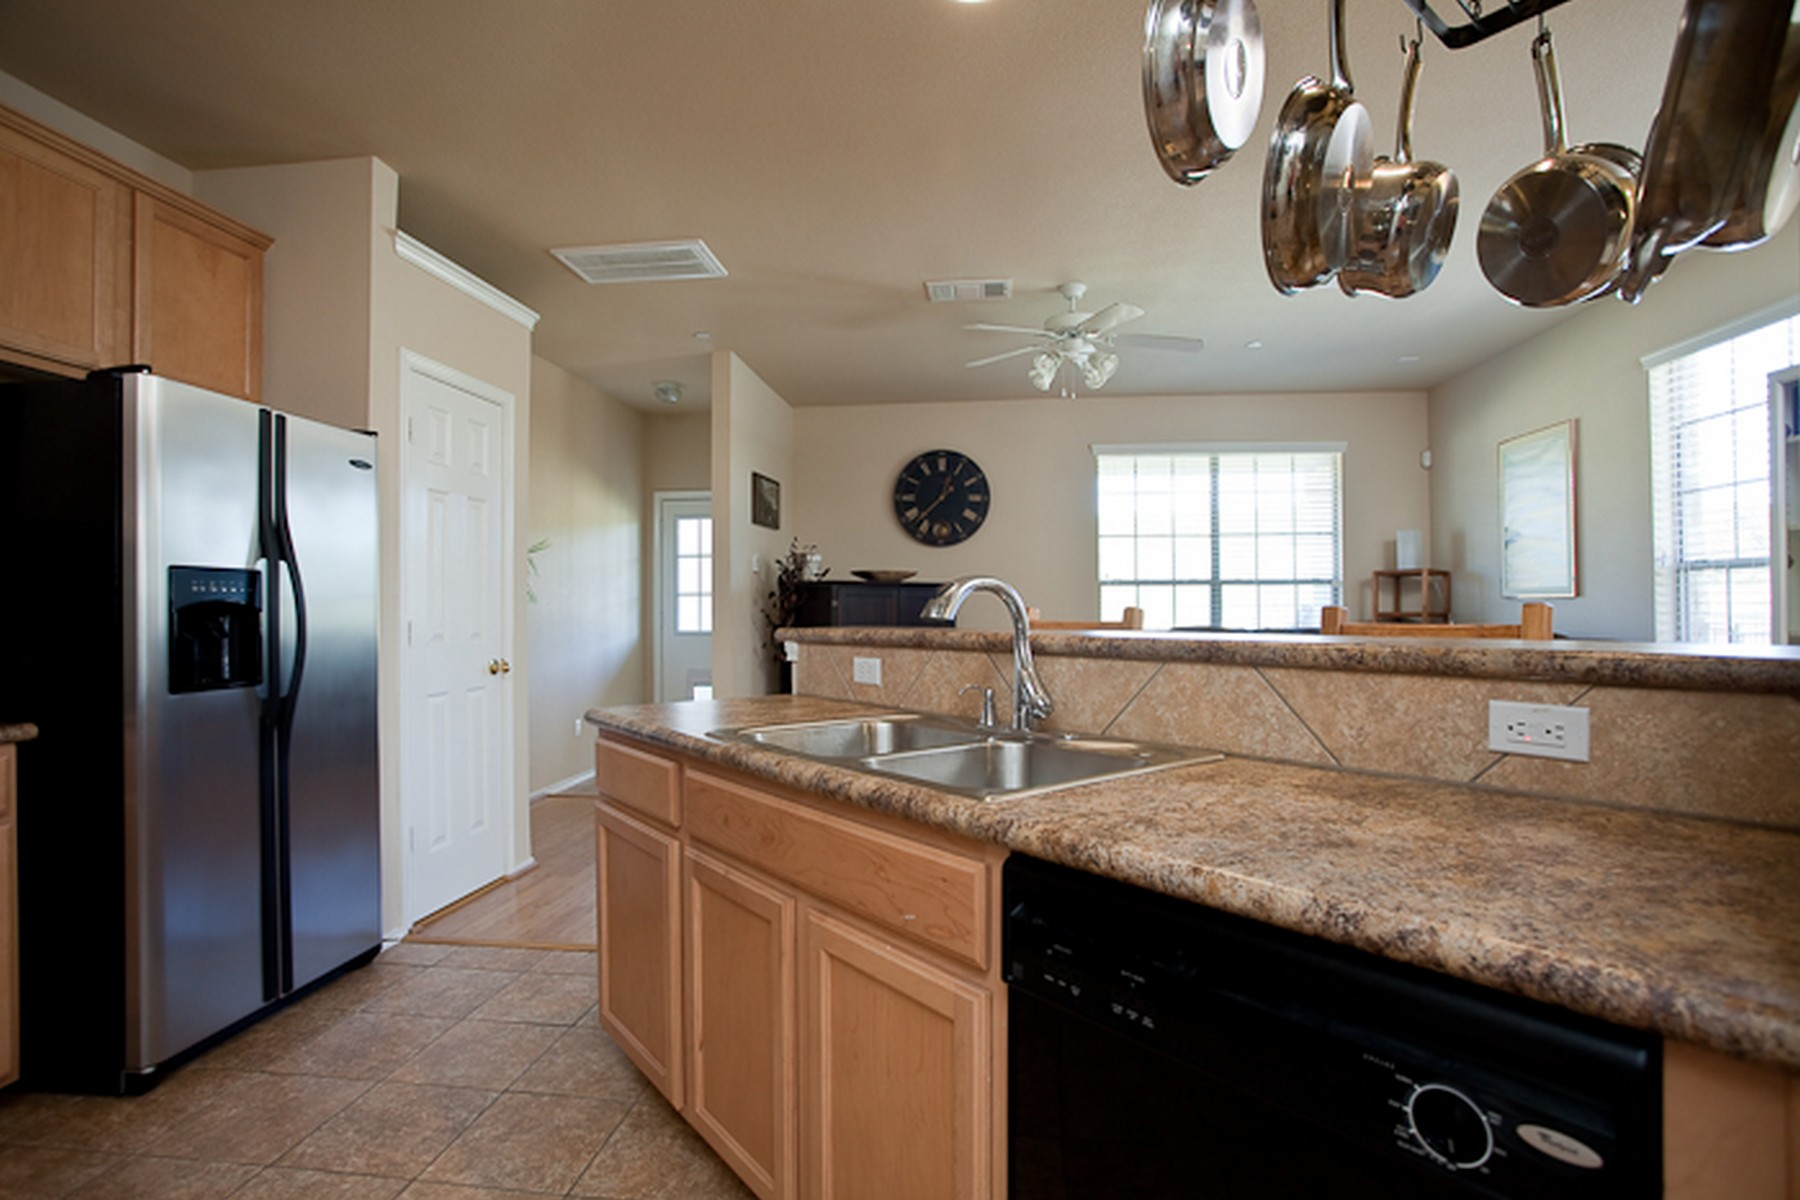 Additional photo for property listing at Beautiful End Unit Brodie Heights Condo 9201 Brodie Ln 903 Austin, Texas 78748 United States